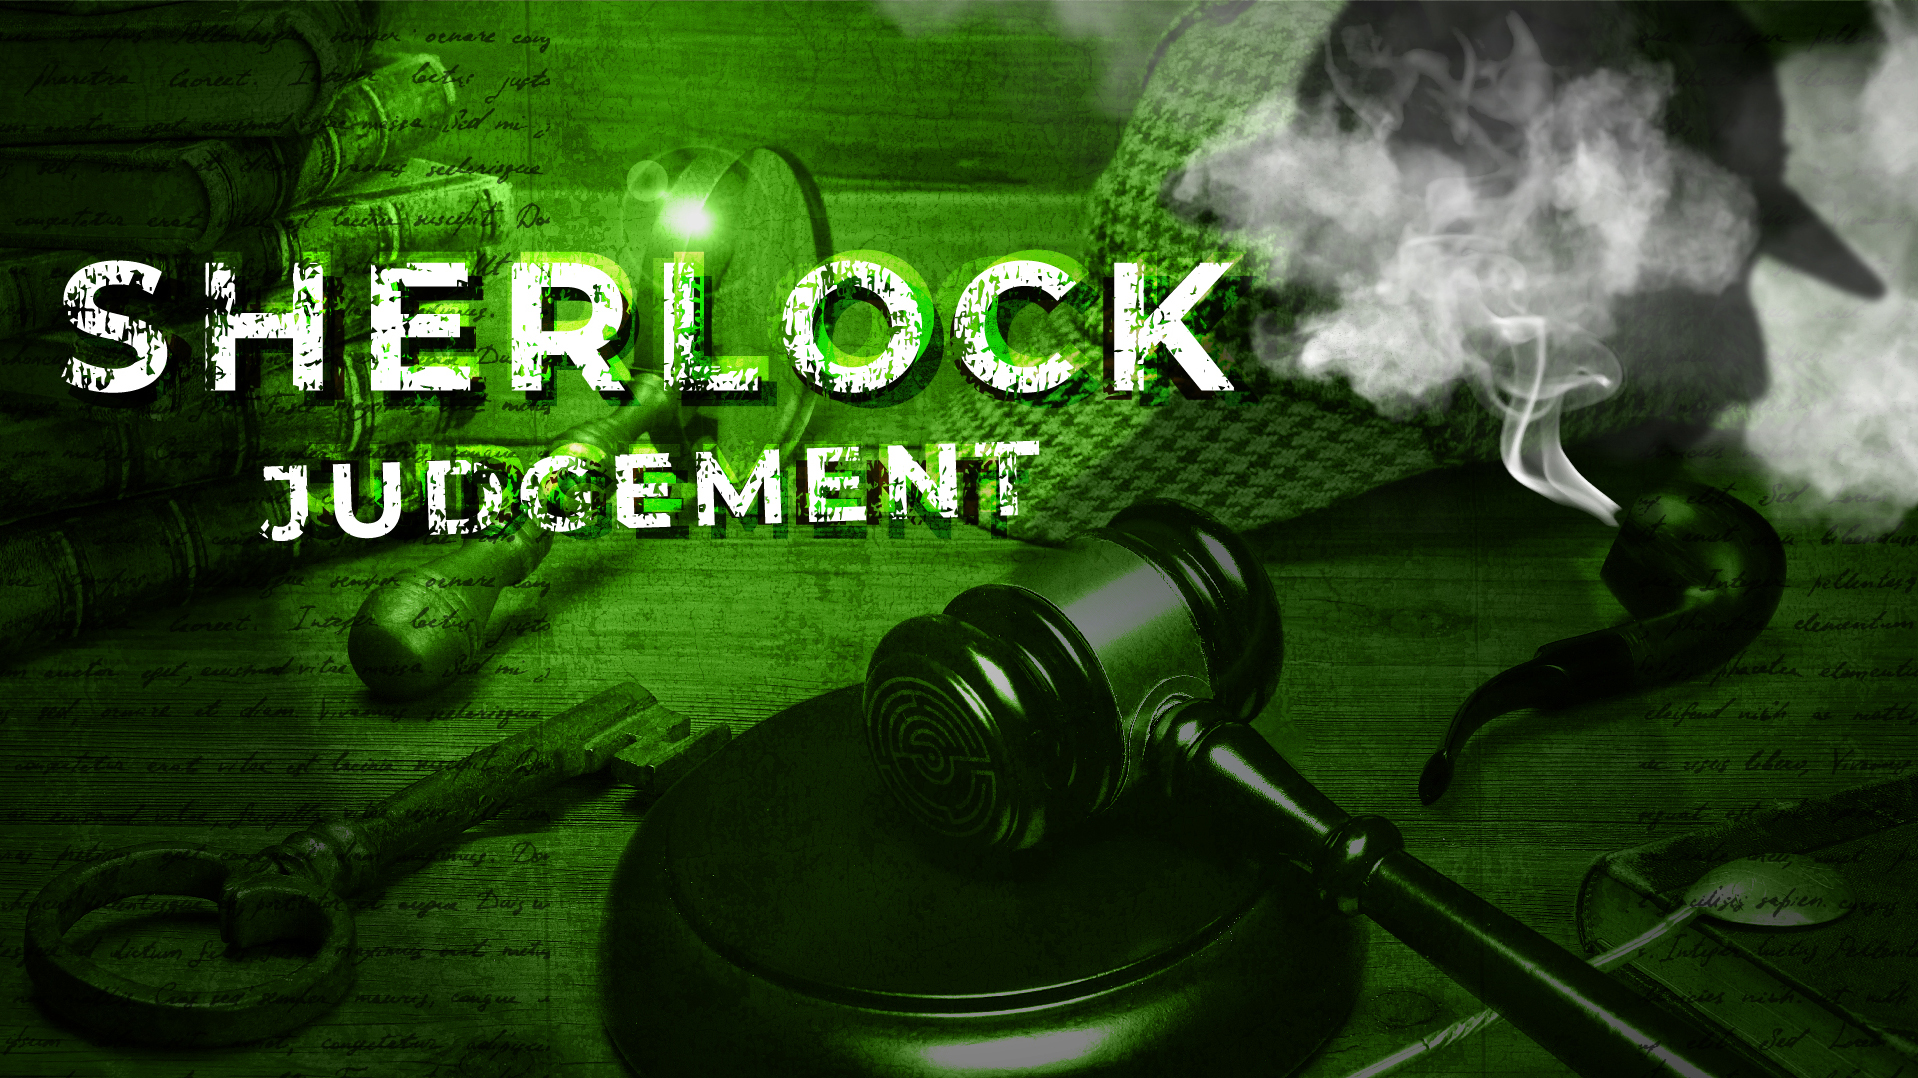 Sherlock Judgement - Evidence is key! When you have eliminated the impossible, whatever remains, however improbable, must be the truth.You and your team of detectives must investigate the mystery in the Courthouse and expose Moriarty's sinister plan.